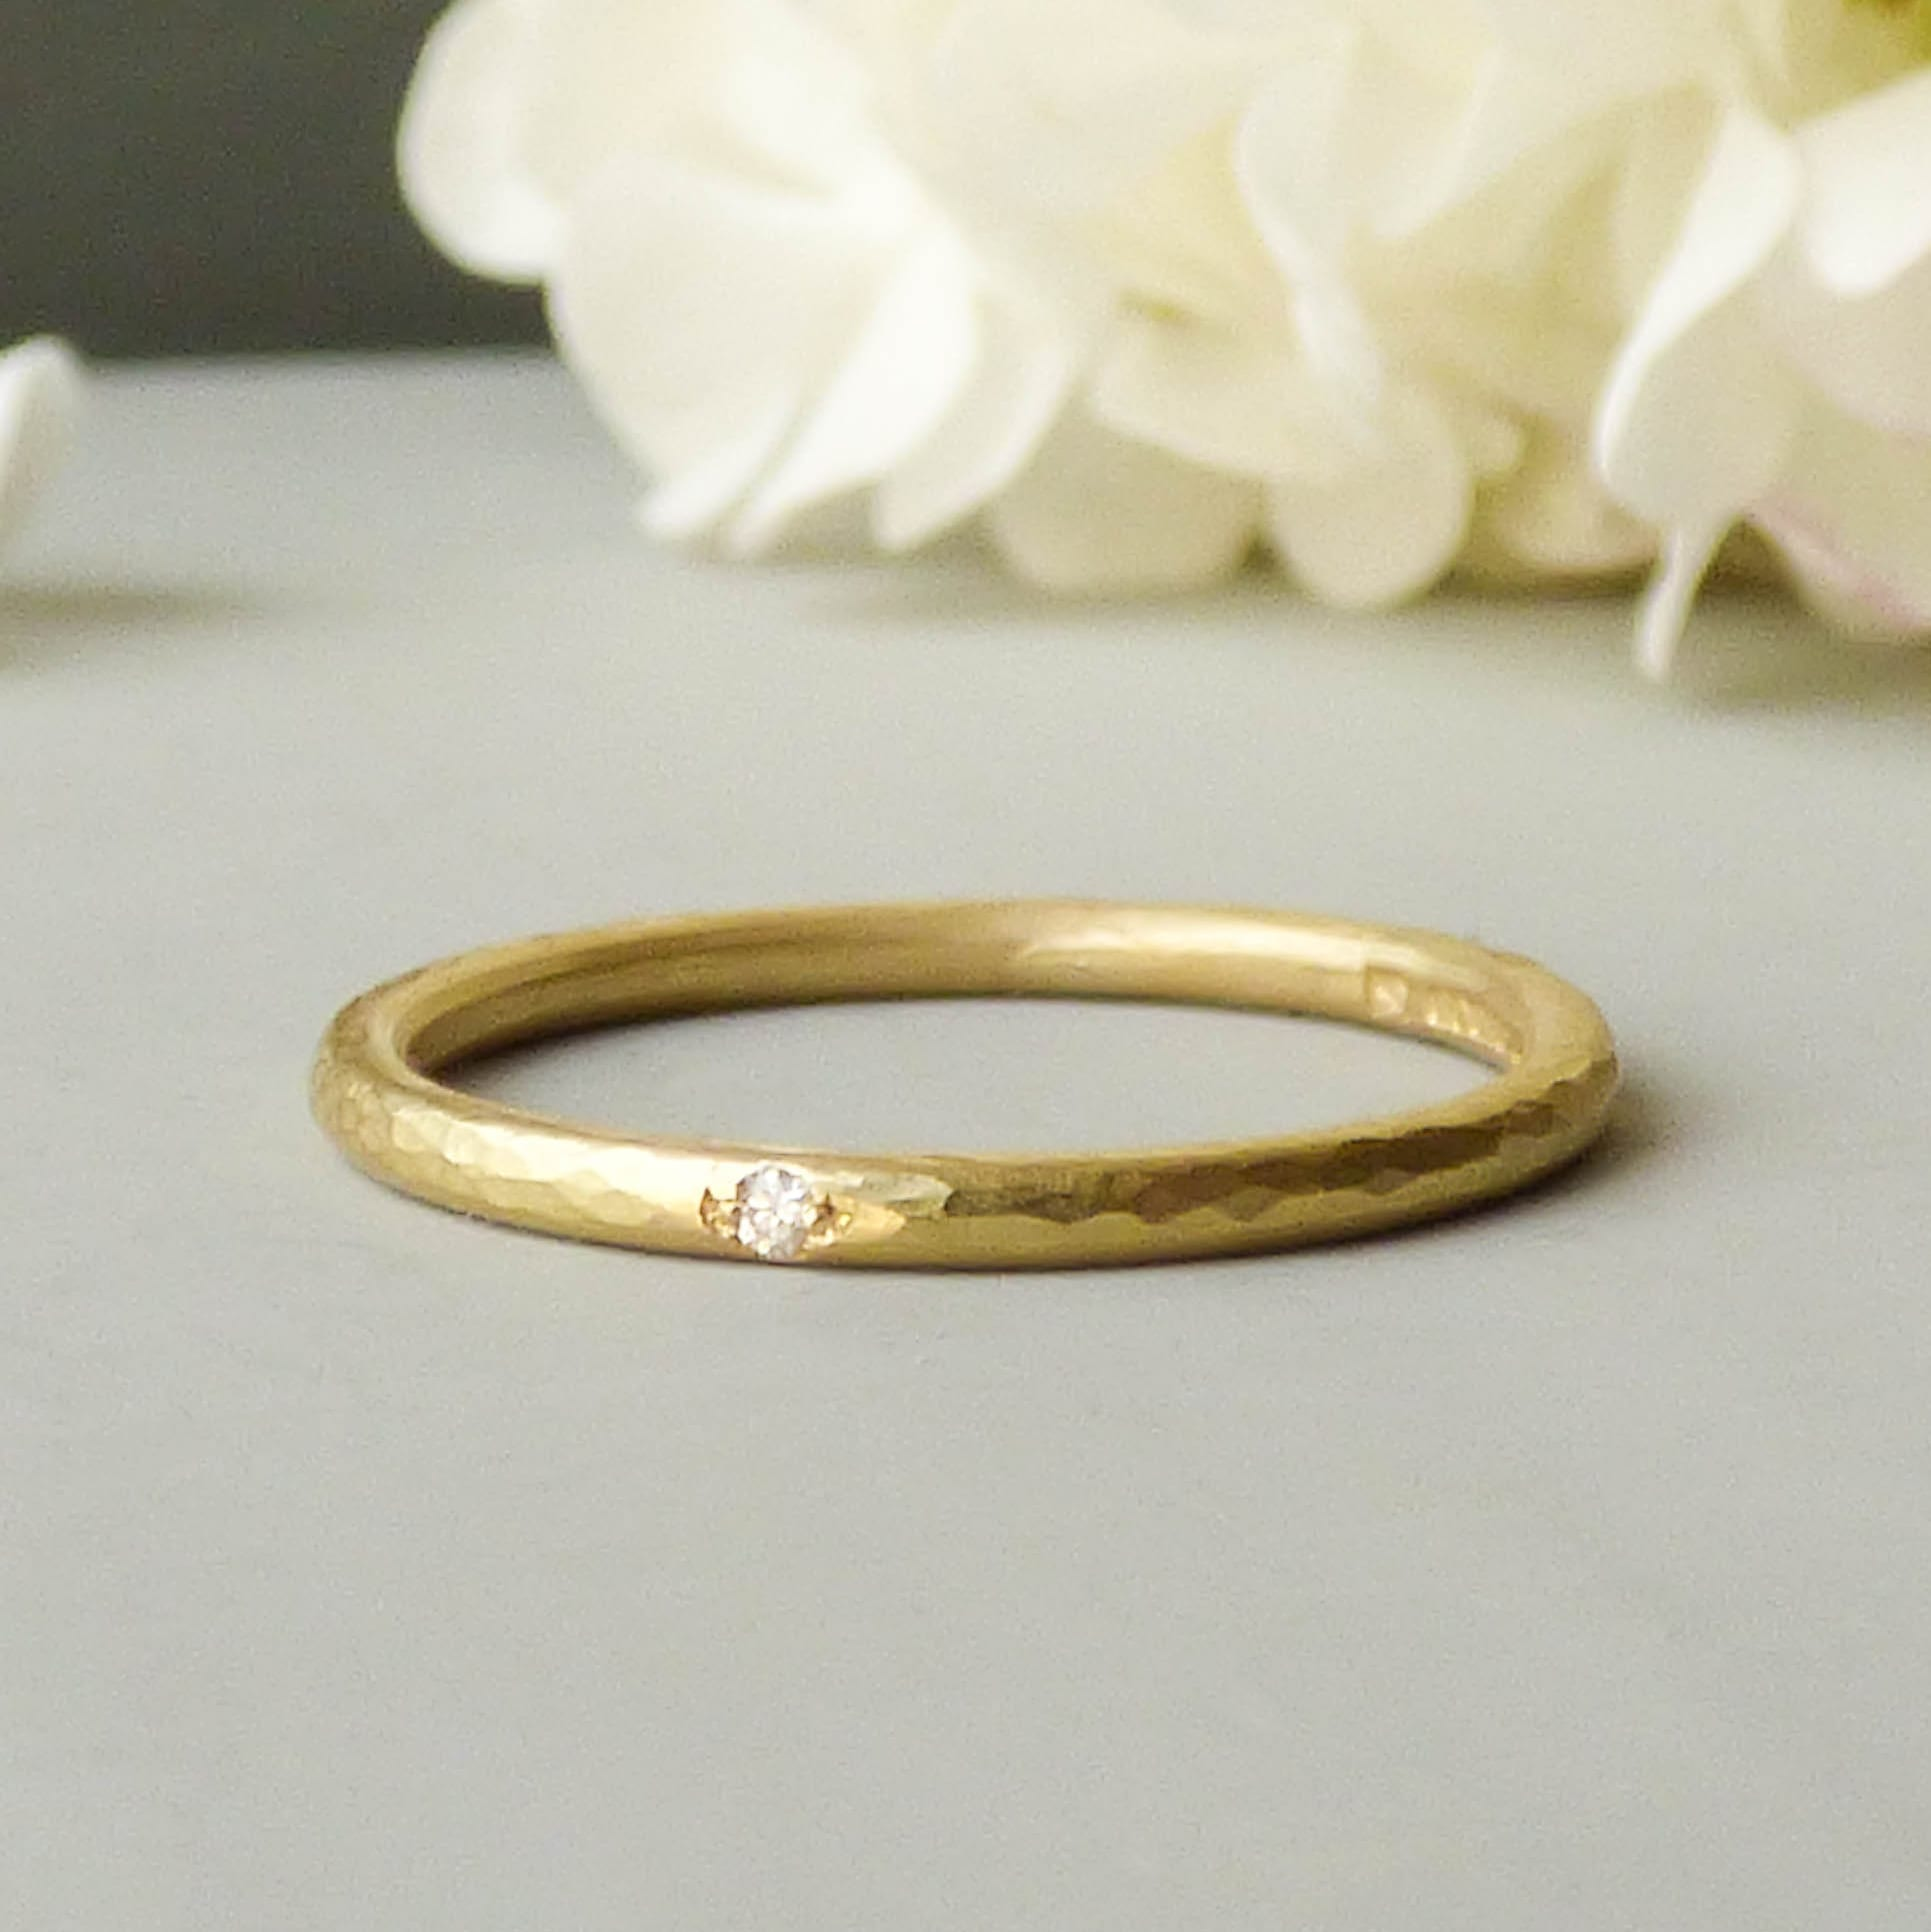 ethical wedding rings harley davidson wedding rings Coco Ethical Wedding Ring In 18ct Fairtrade Gold Shakti Ellenwood